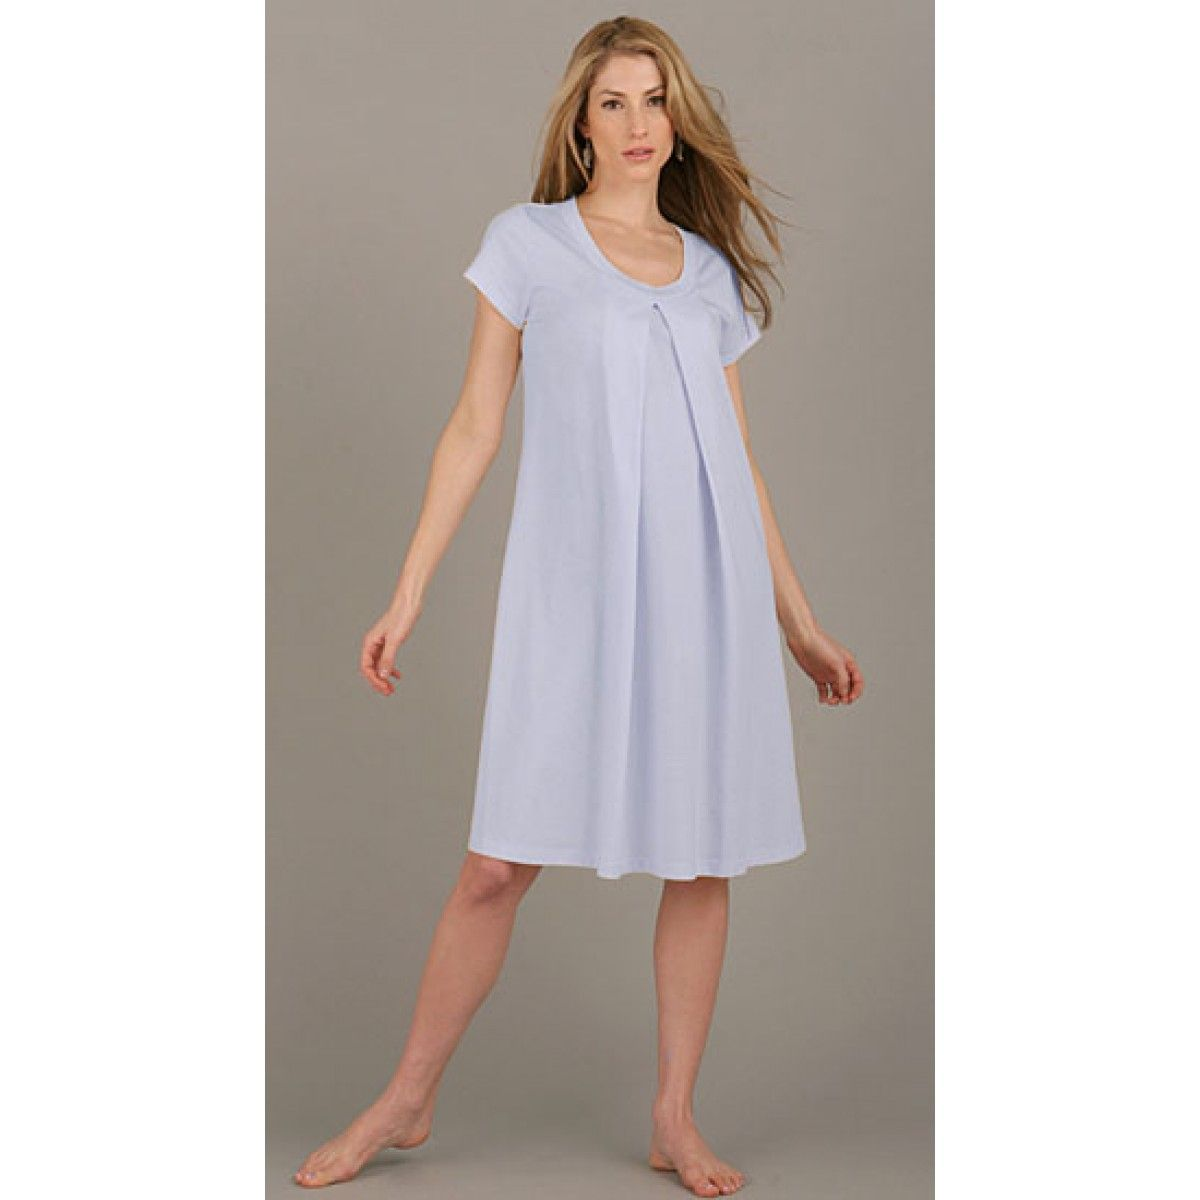 137561754393b Organic Short Sleeeve Hospital Nursing Gown now on sale on our website  tummystyle.com. Wear something comfortable and convenient while giving birth .